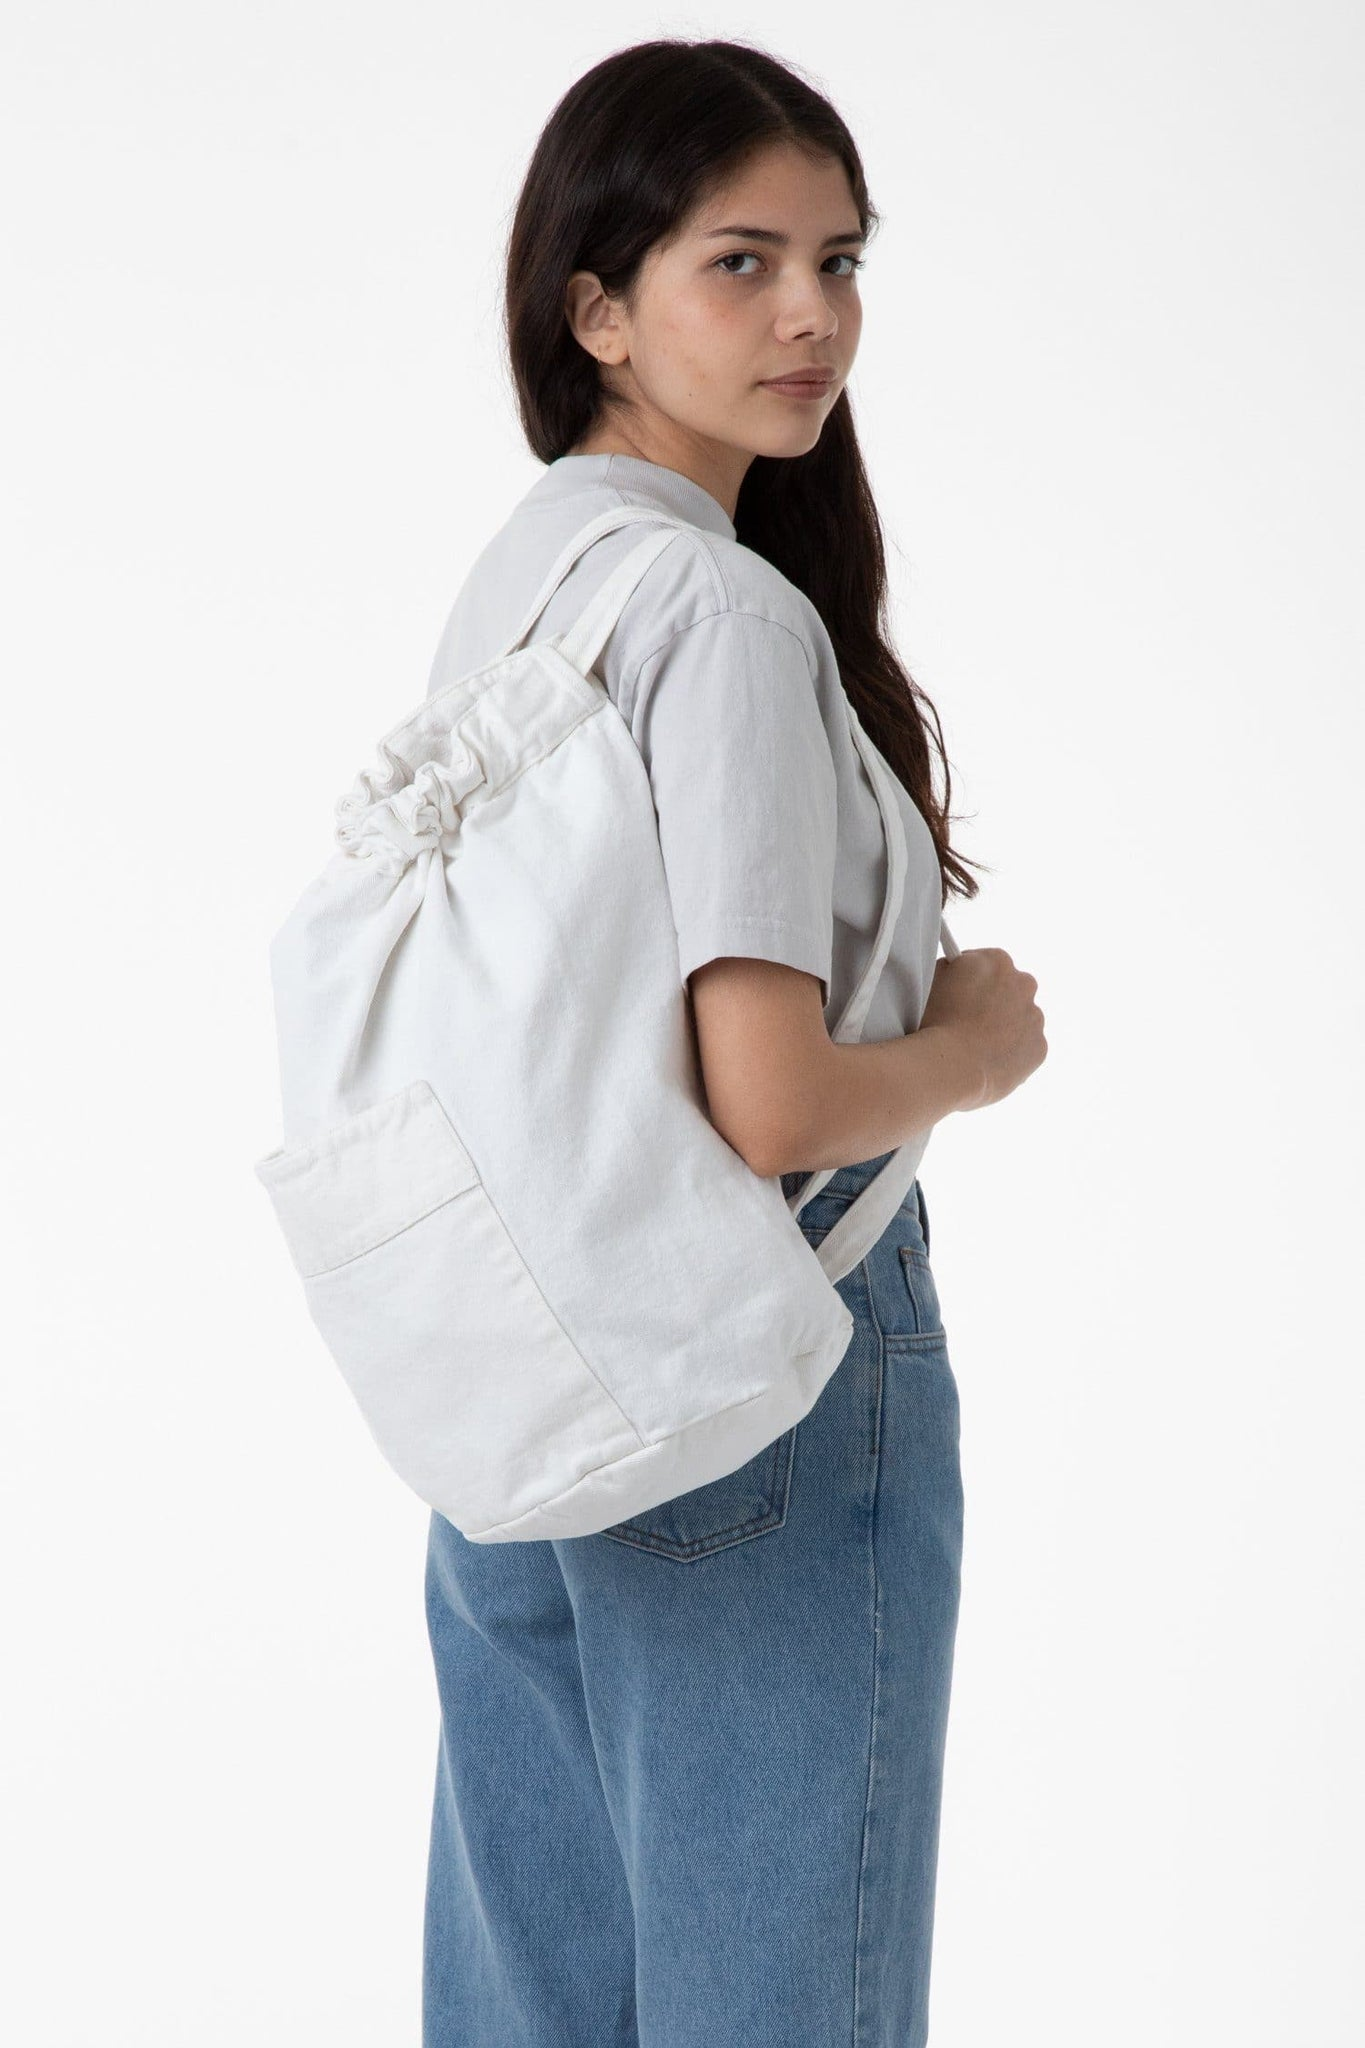 BD94 - The Bucket Bag